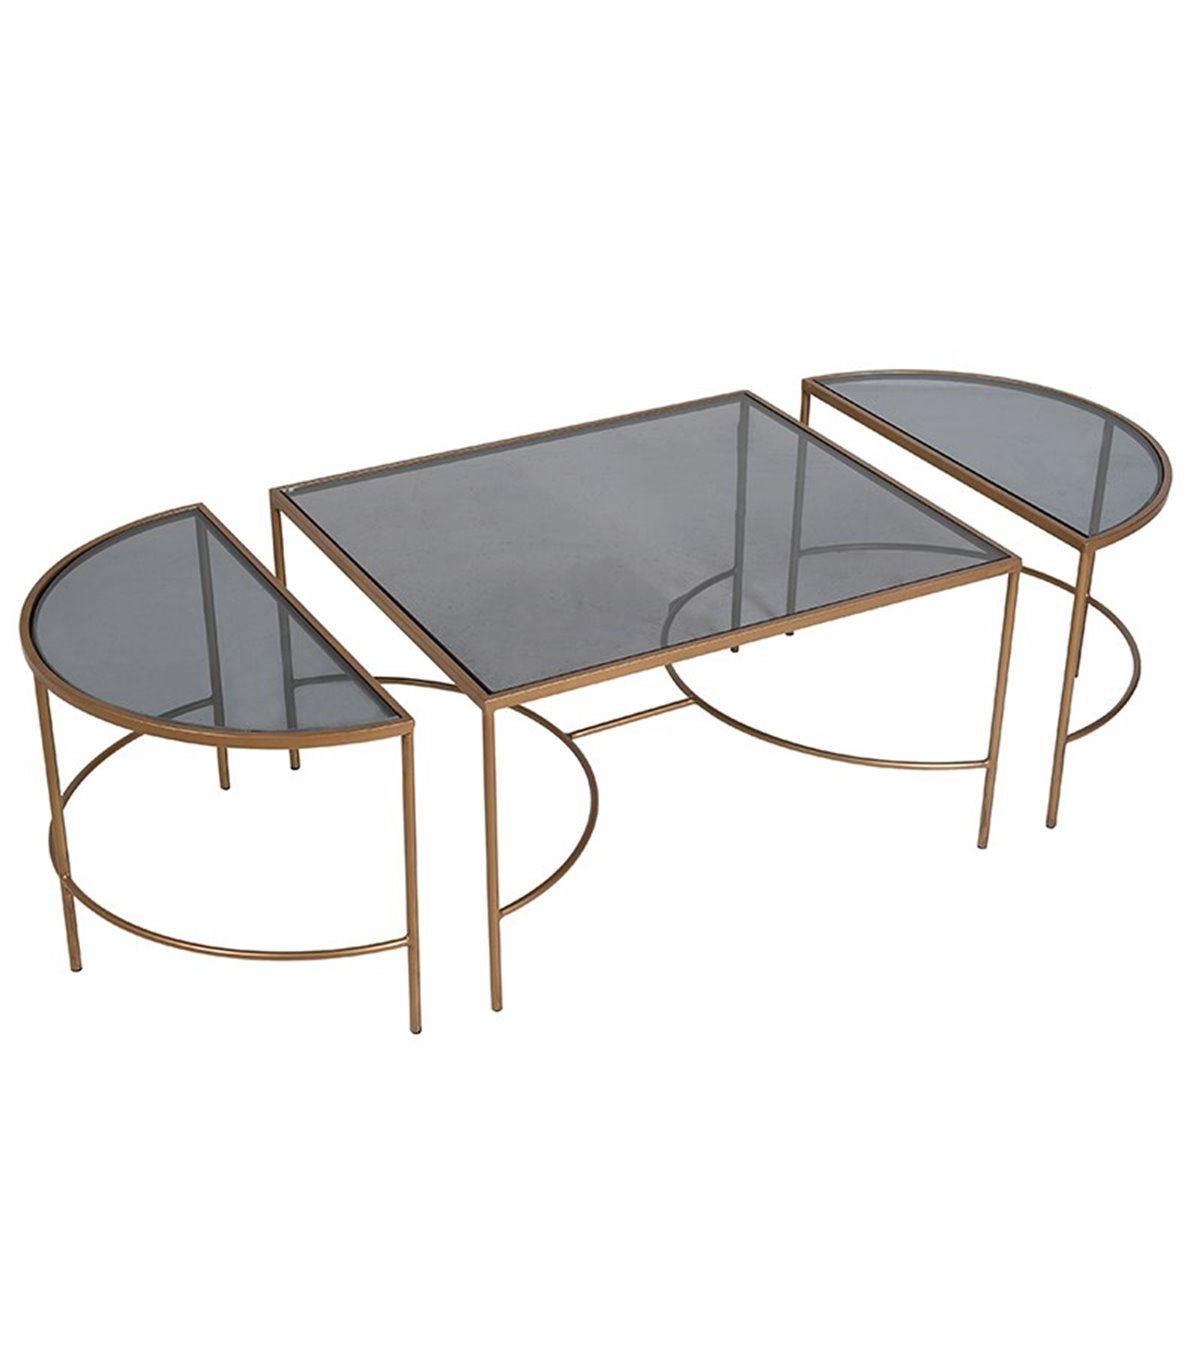 Modular Coffee Tables Intended For Most Recent Modular Glass Top Oblong Coffee Table (View 20 of 20)